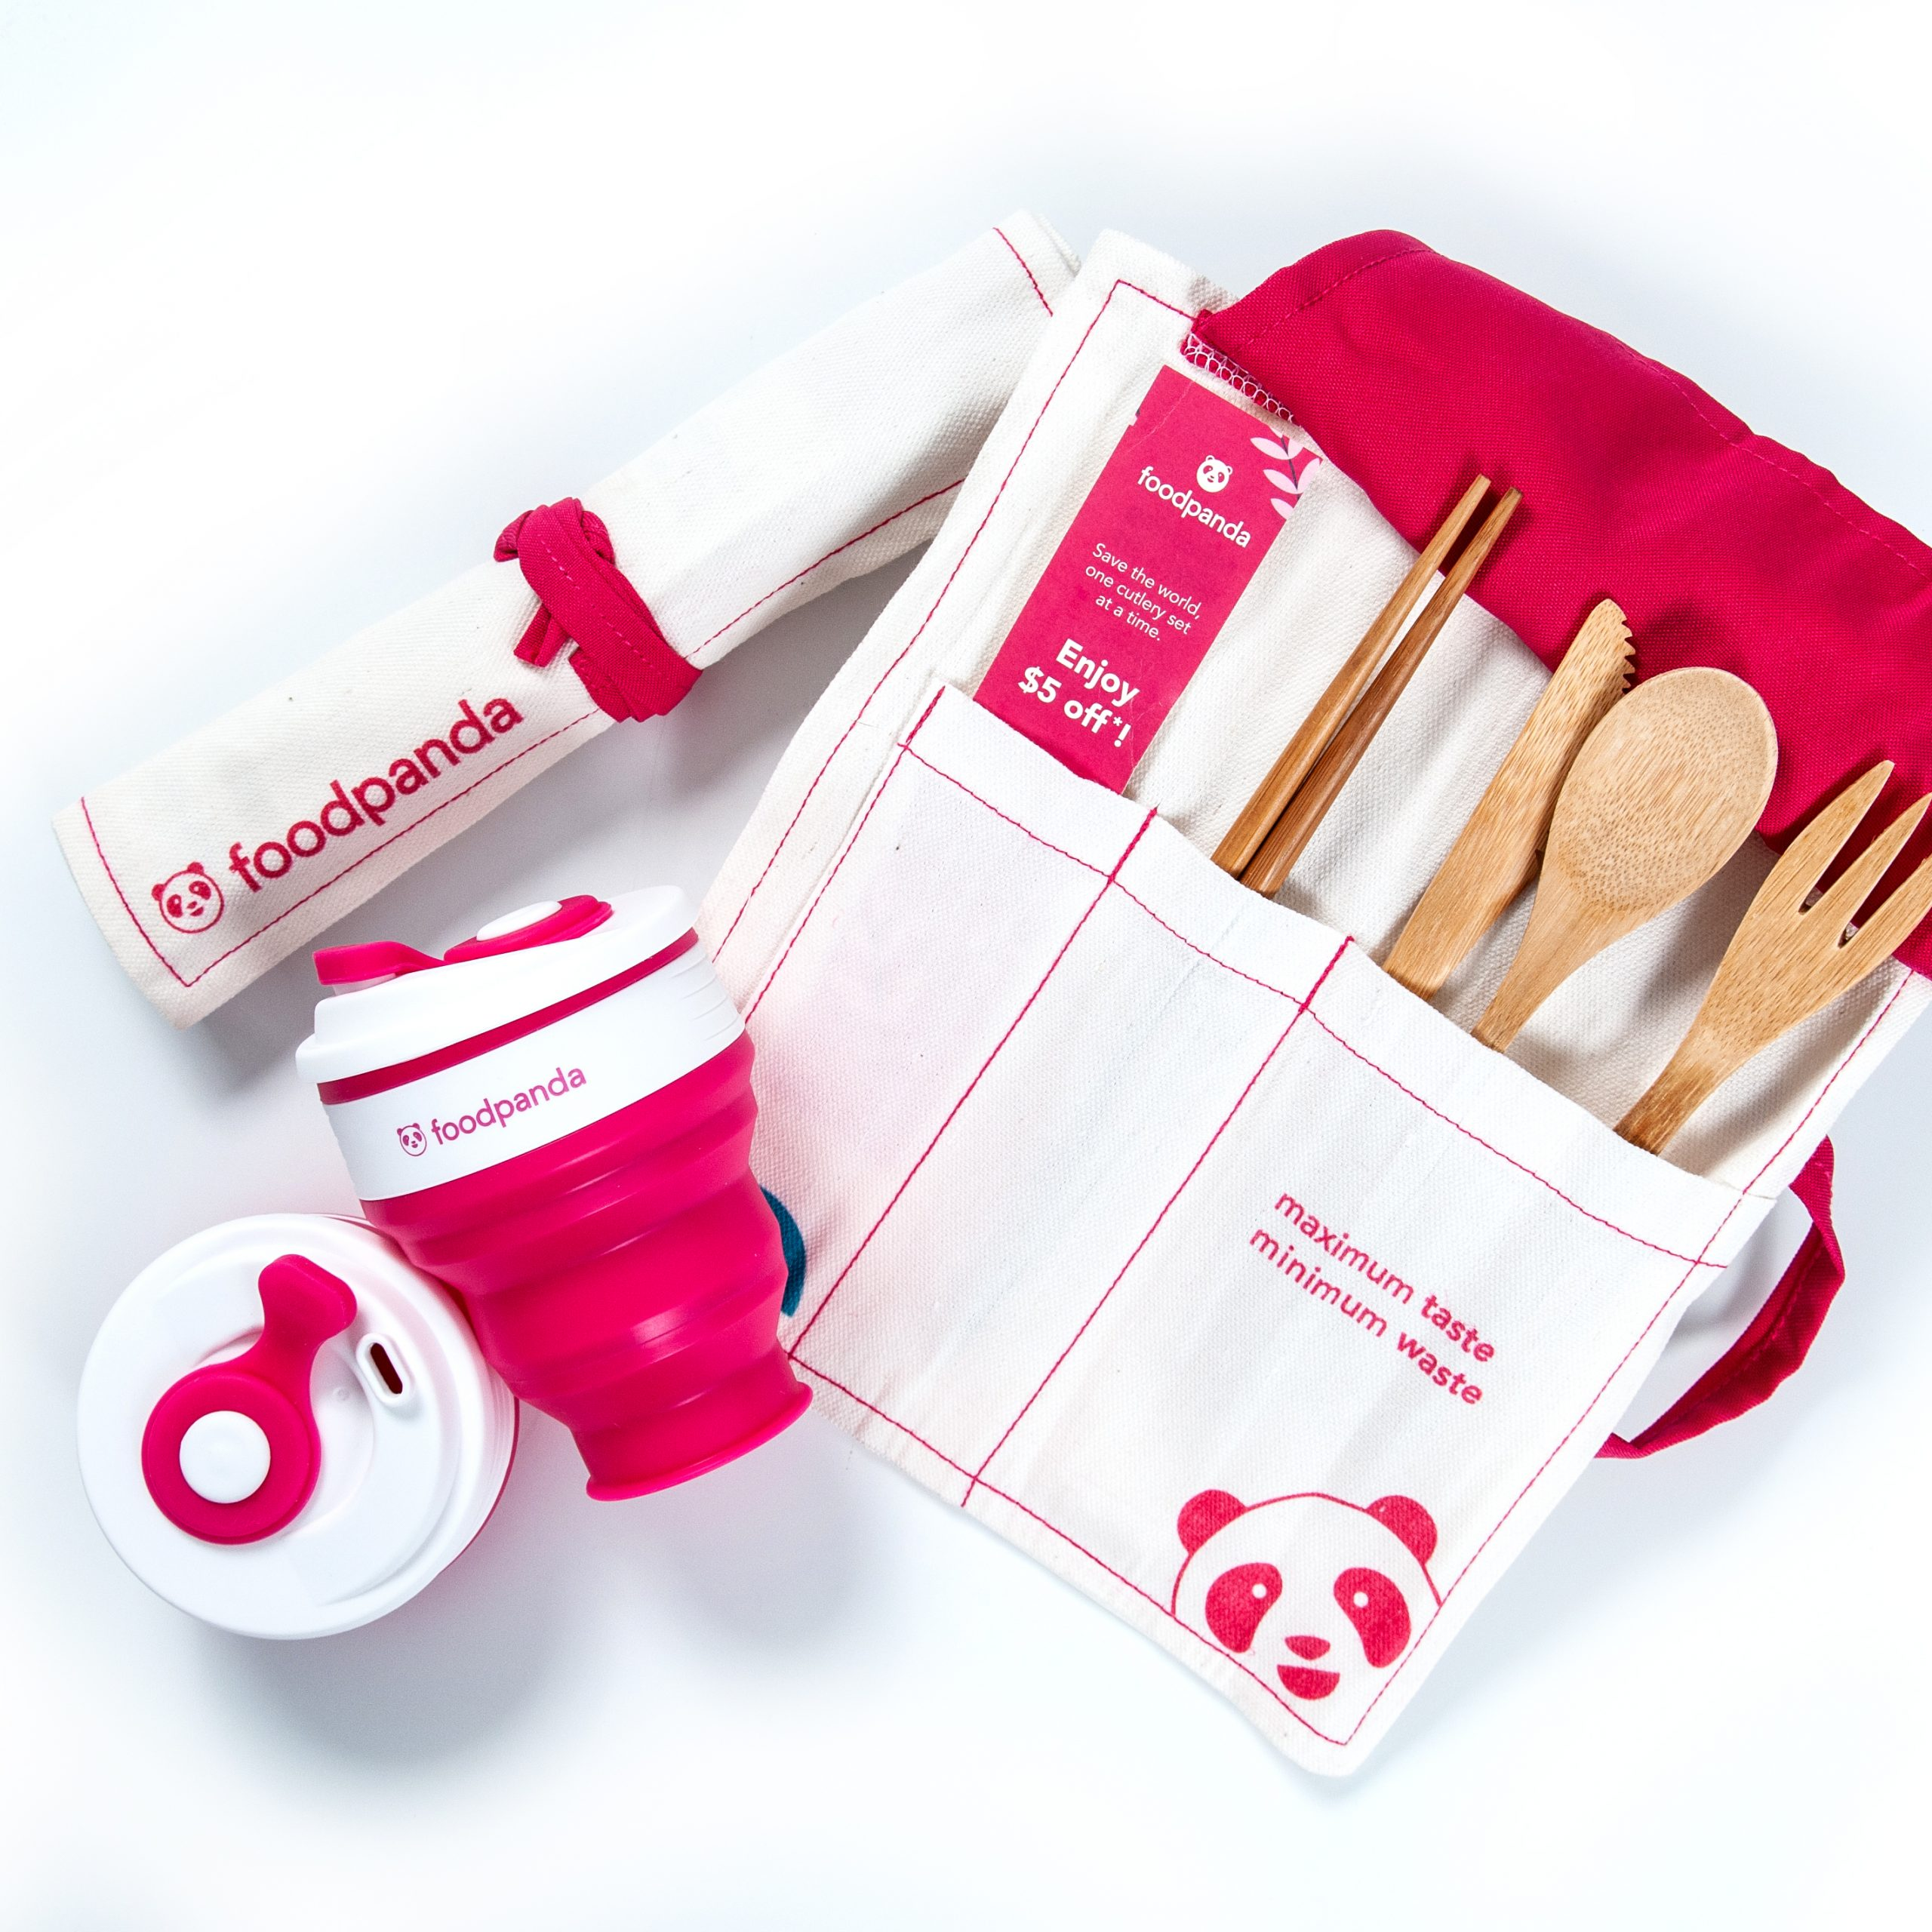 photo of foodpanda cutlery and collapsible cup